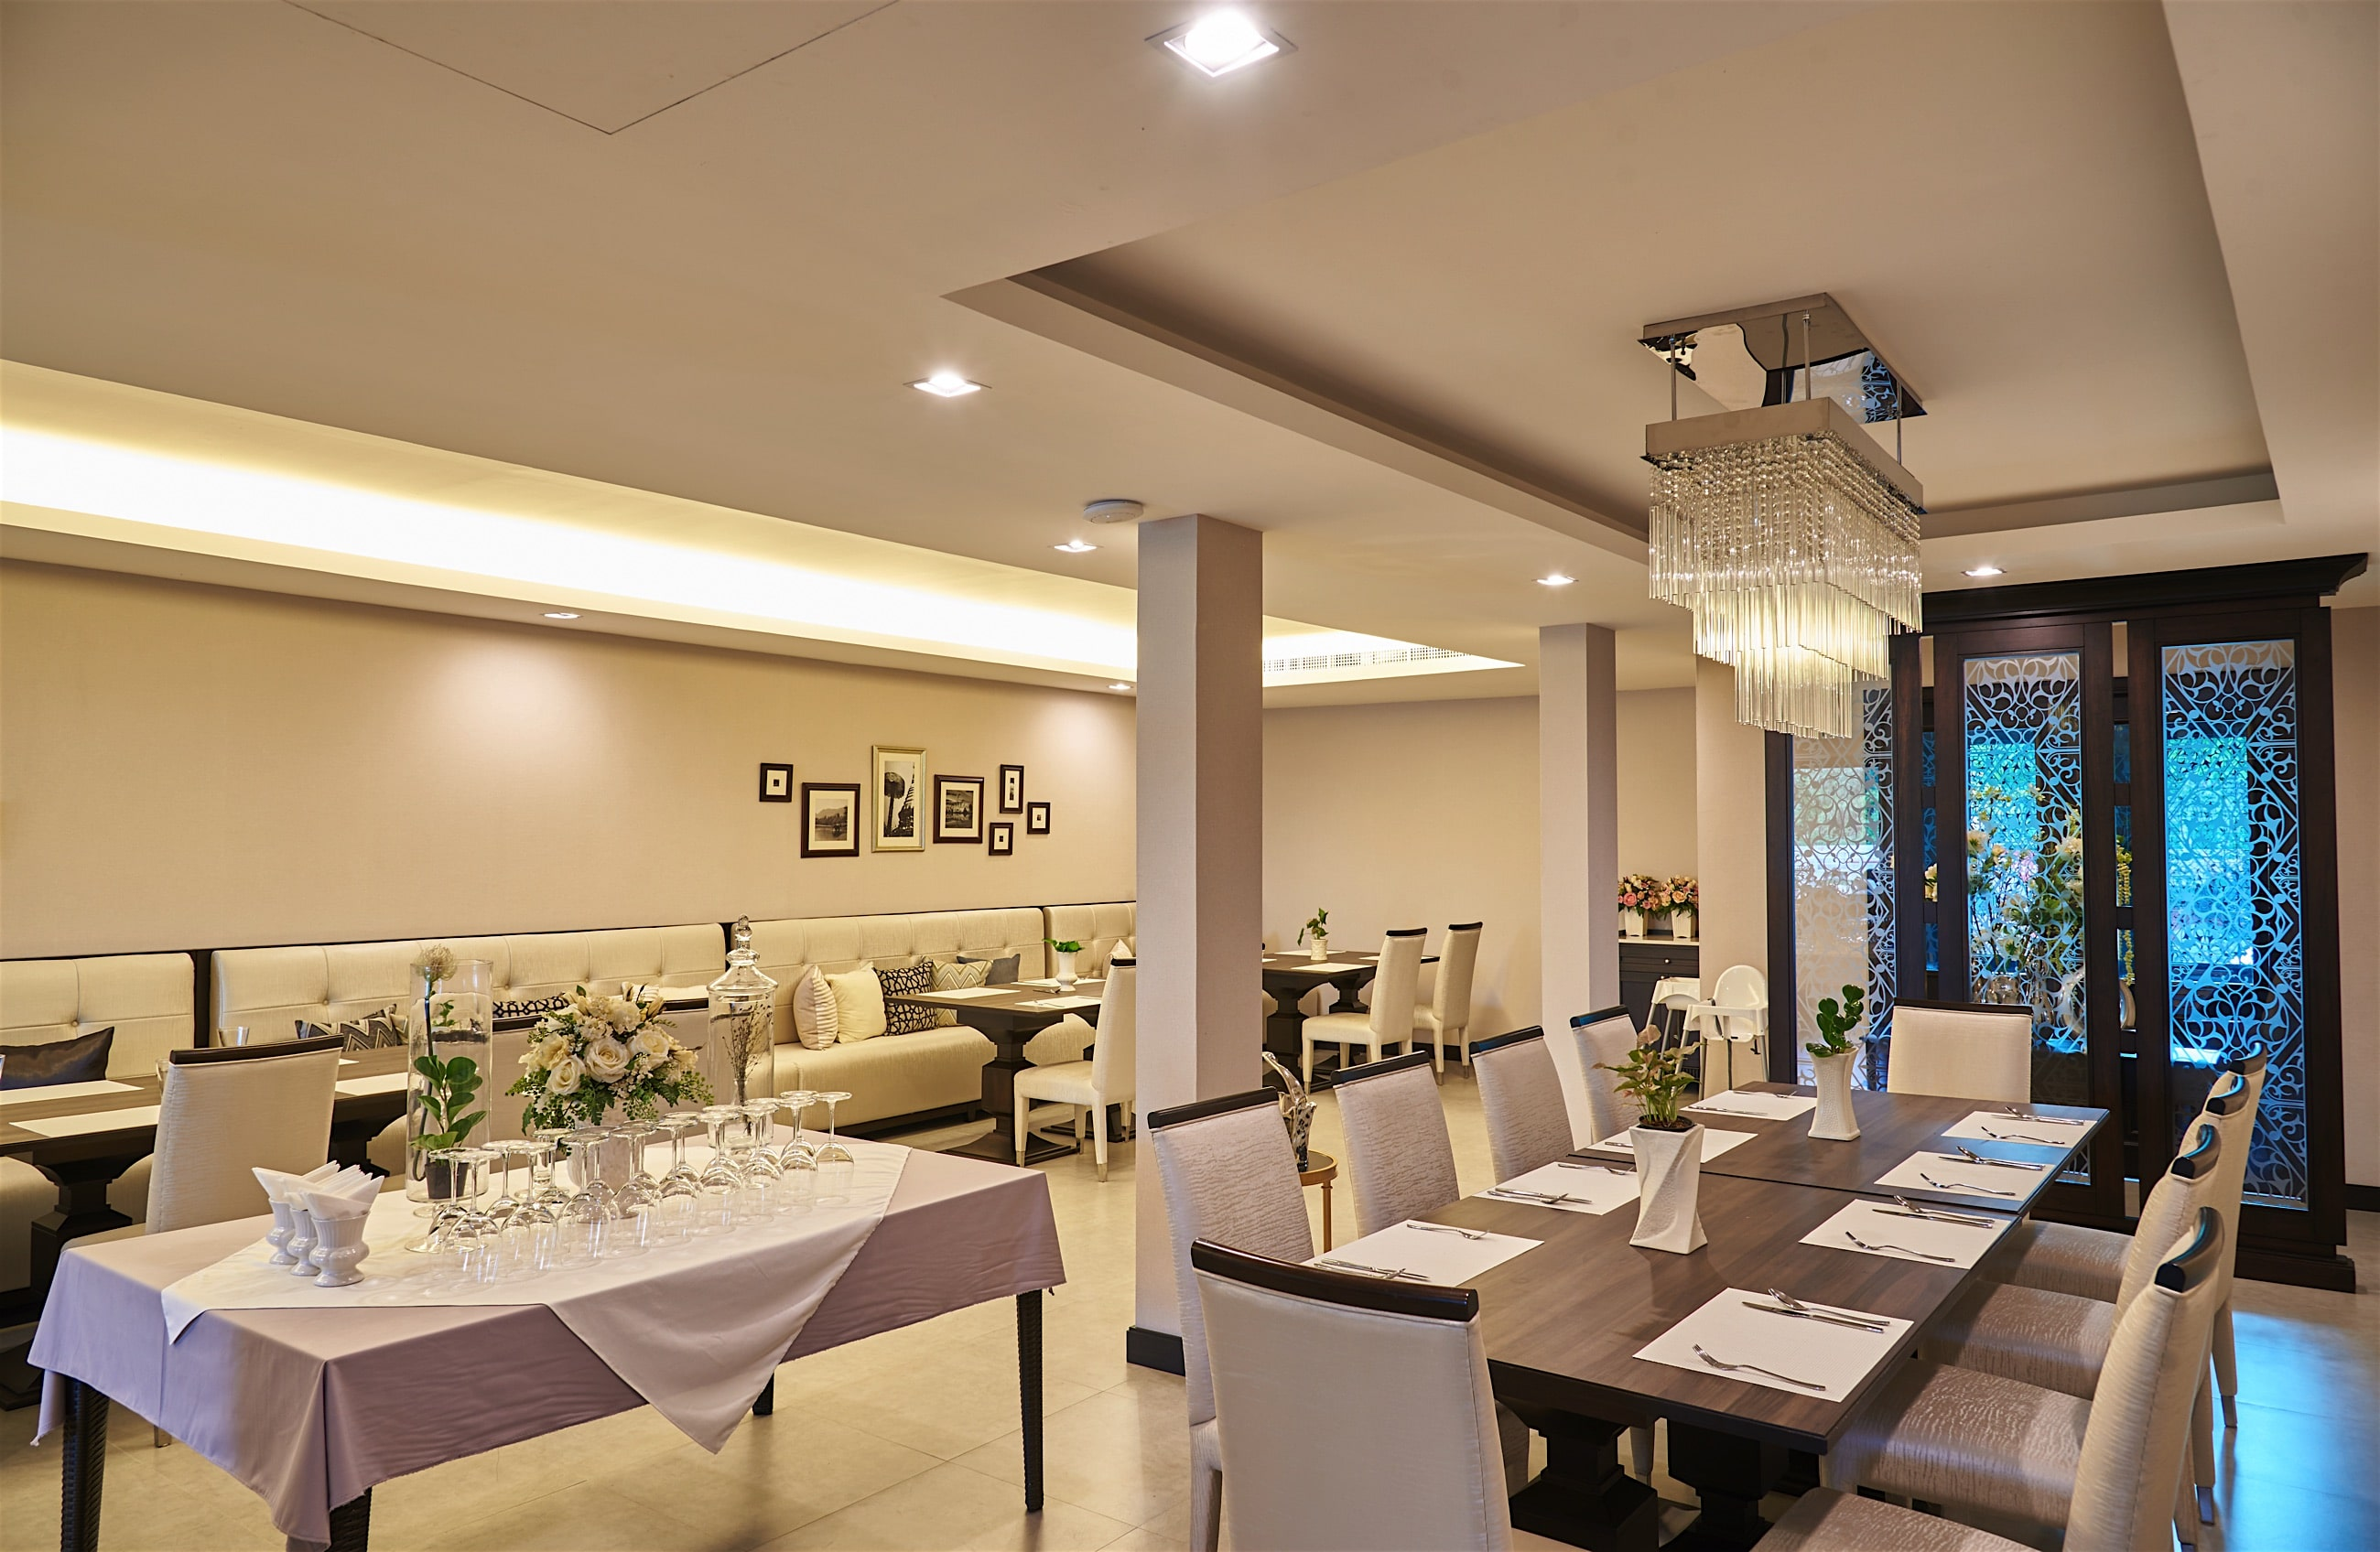 The Vorra Bistro Fine Indoor Dining in Chiang Mai.